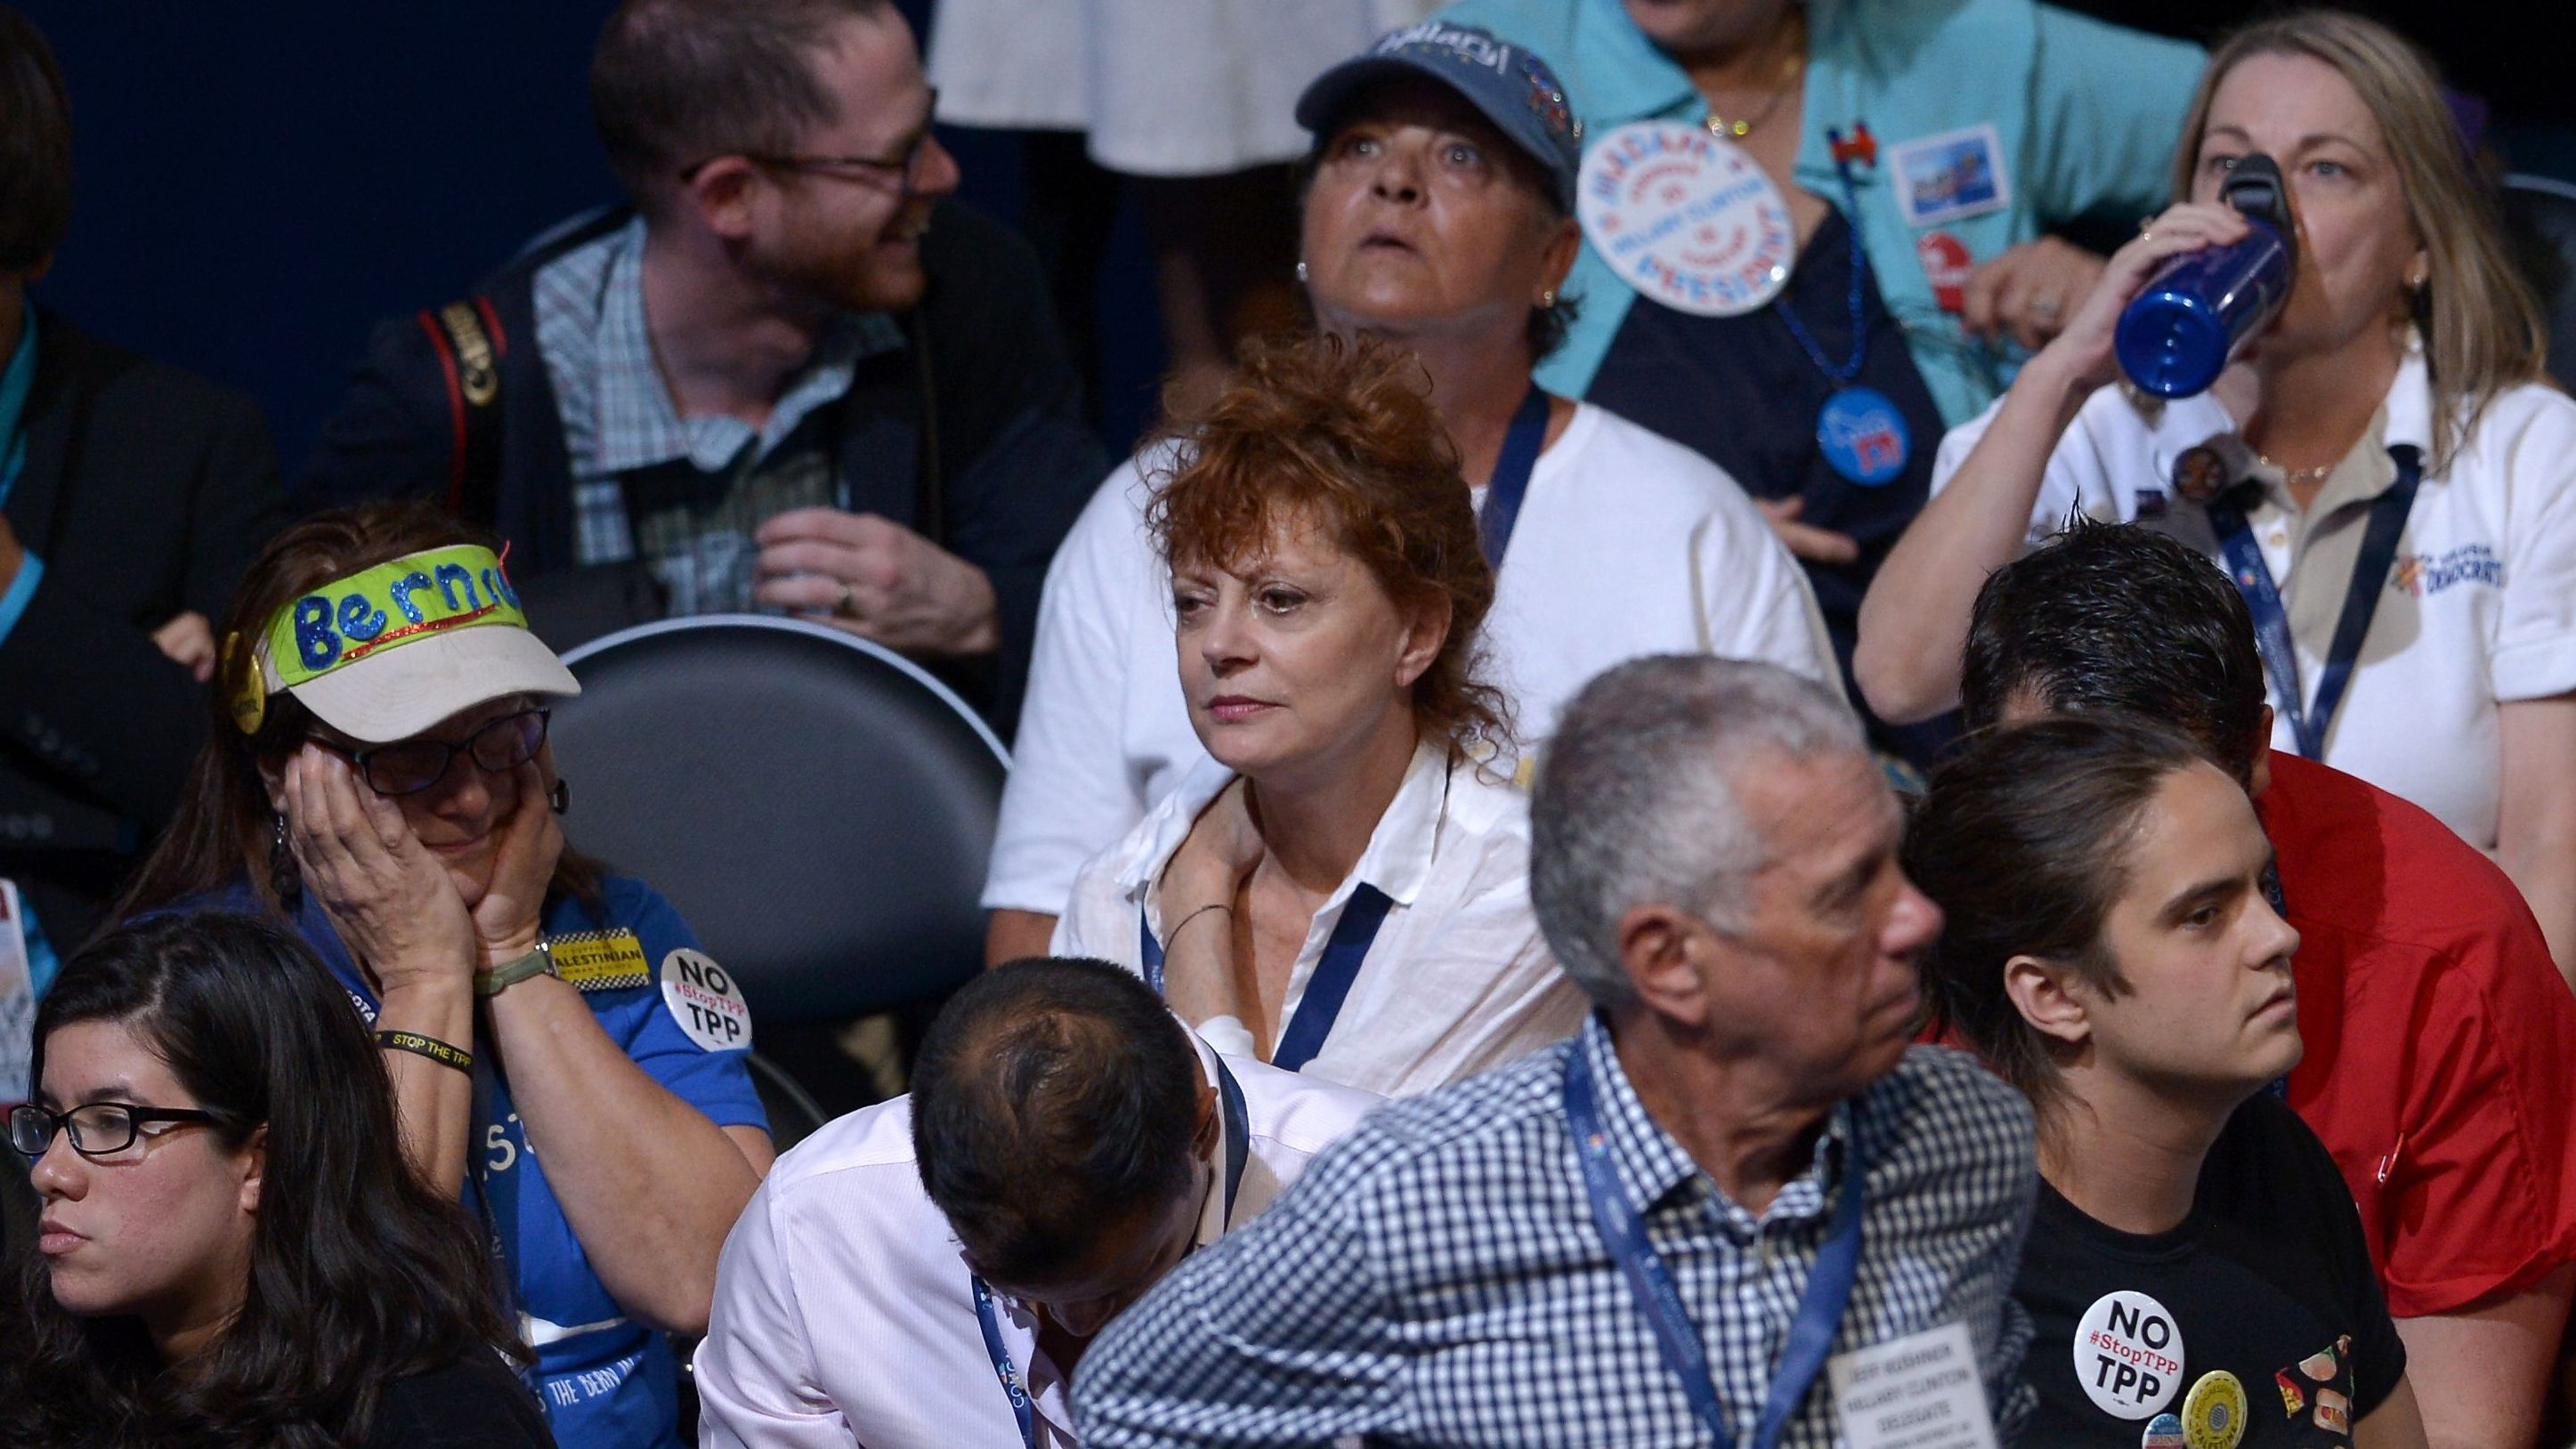 Susan Sarandon And Others Protest 'Slights' Against Bernie Sanders